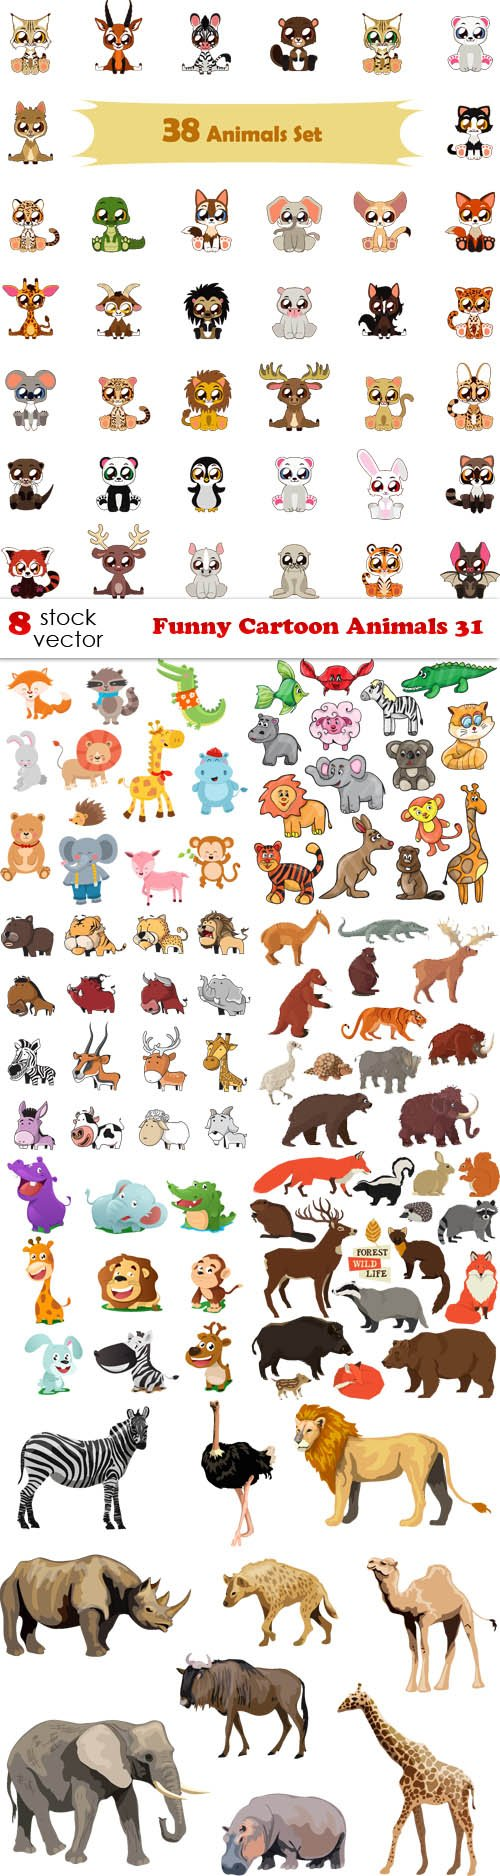 Vectors - Funny Cartoon Animals 31